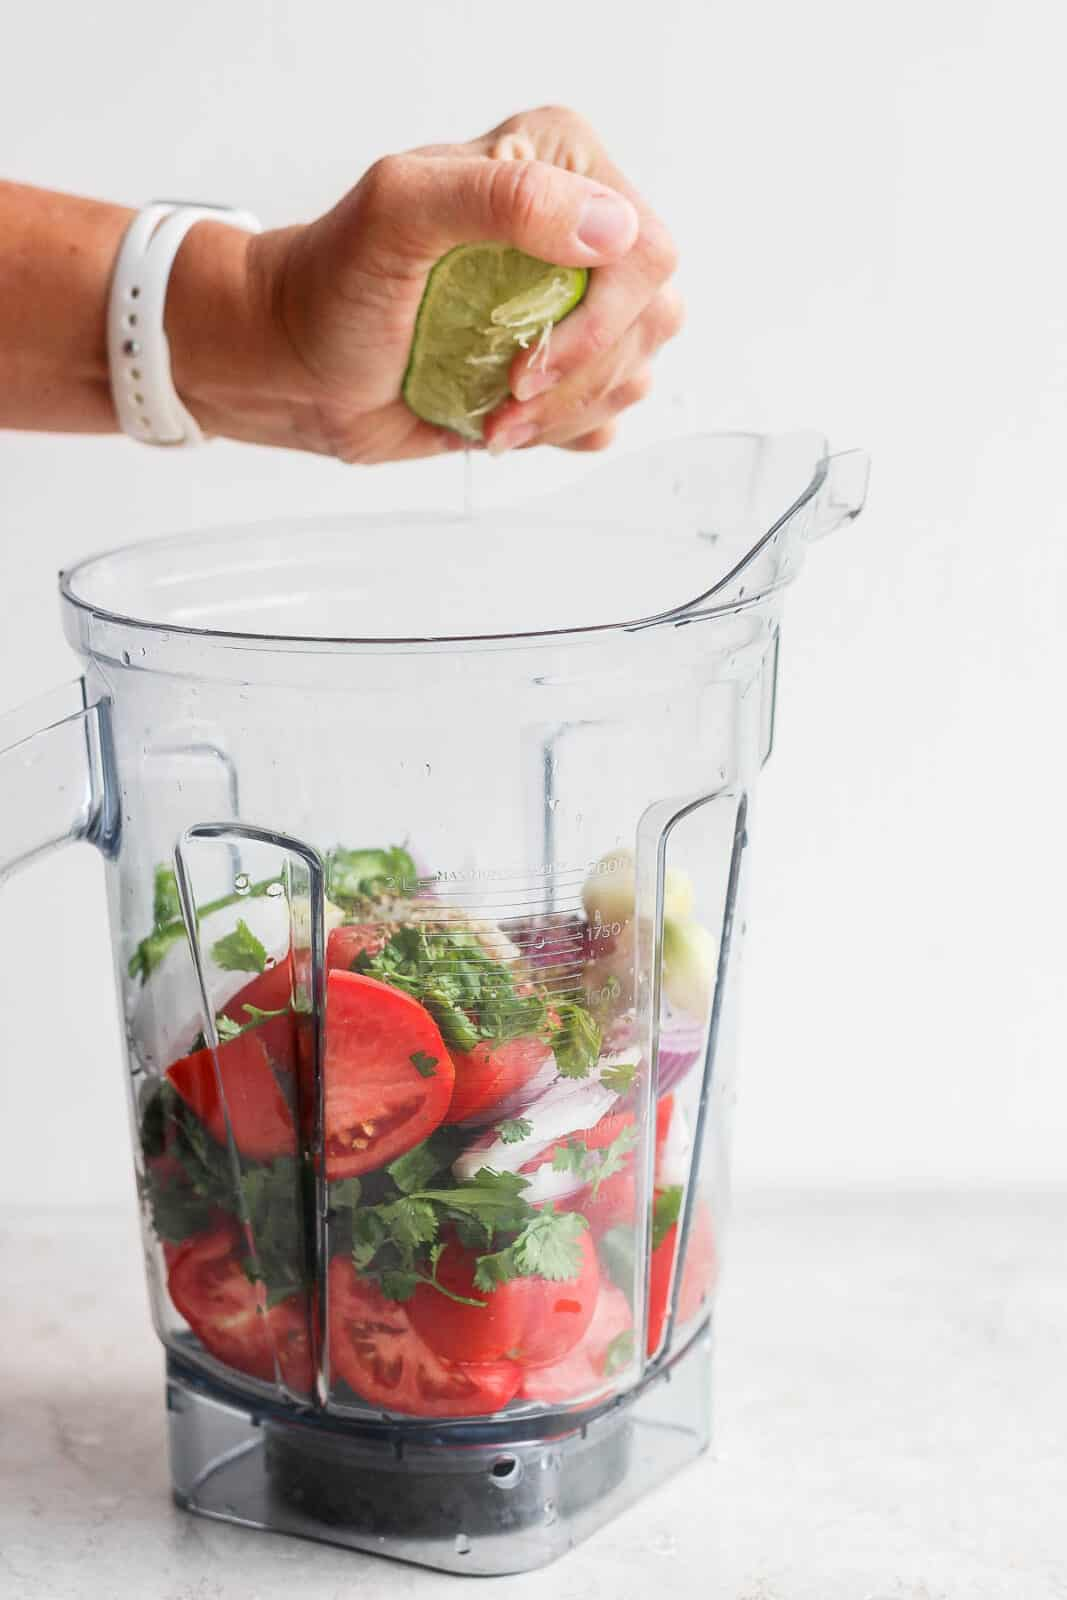 Someone squeezing lime juice into a blender full of salsa ingredients.